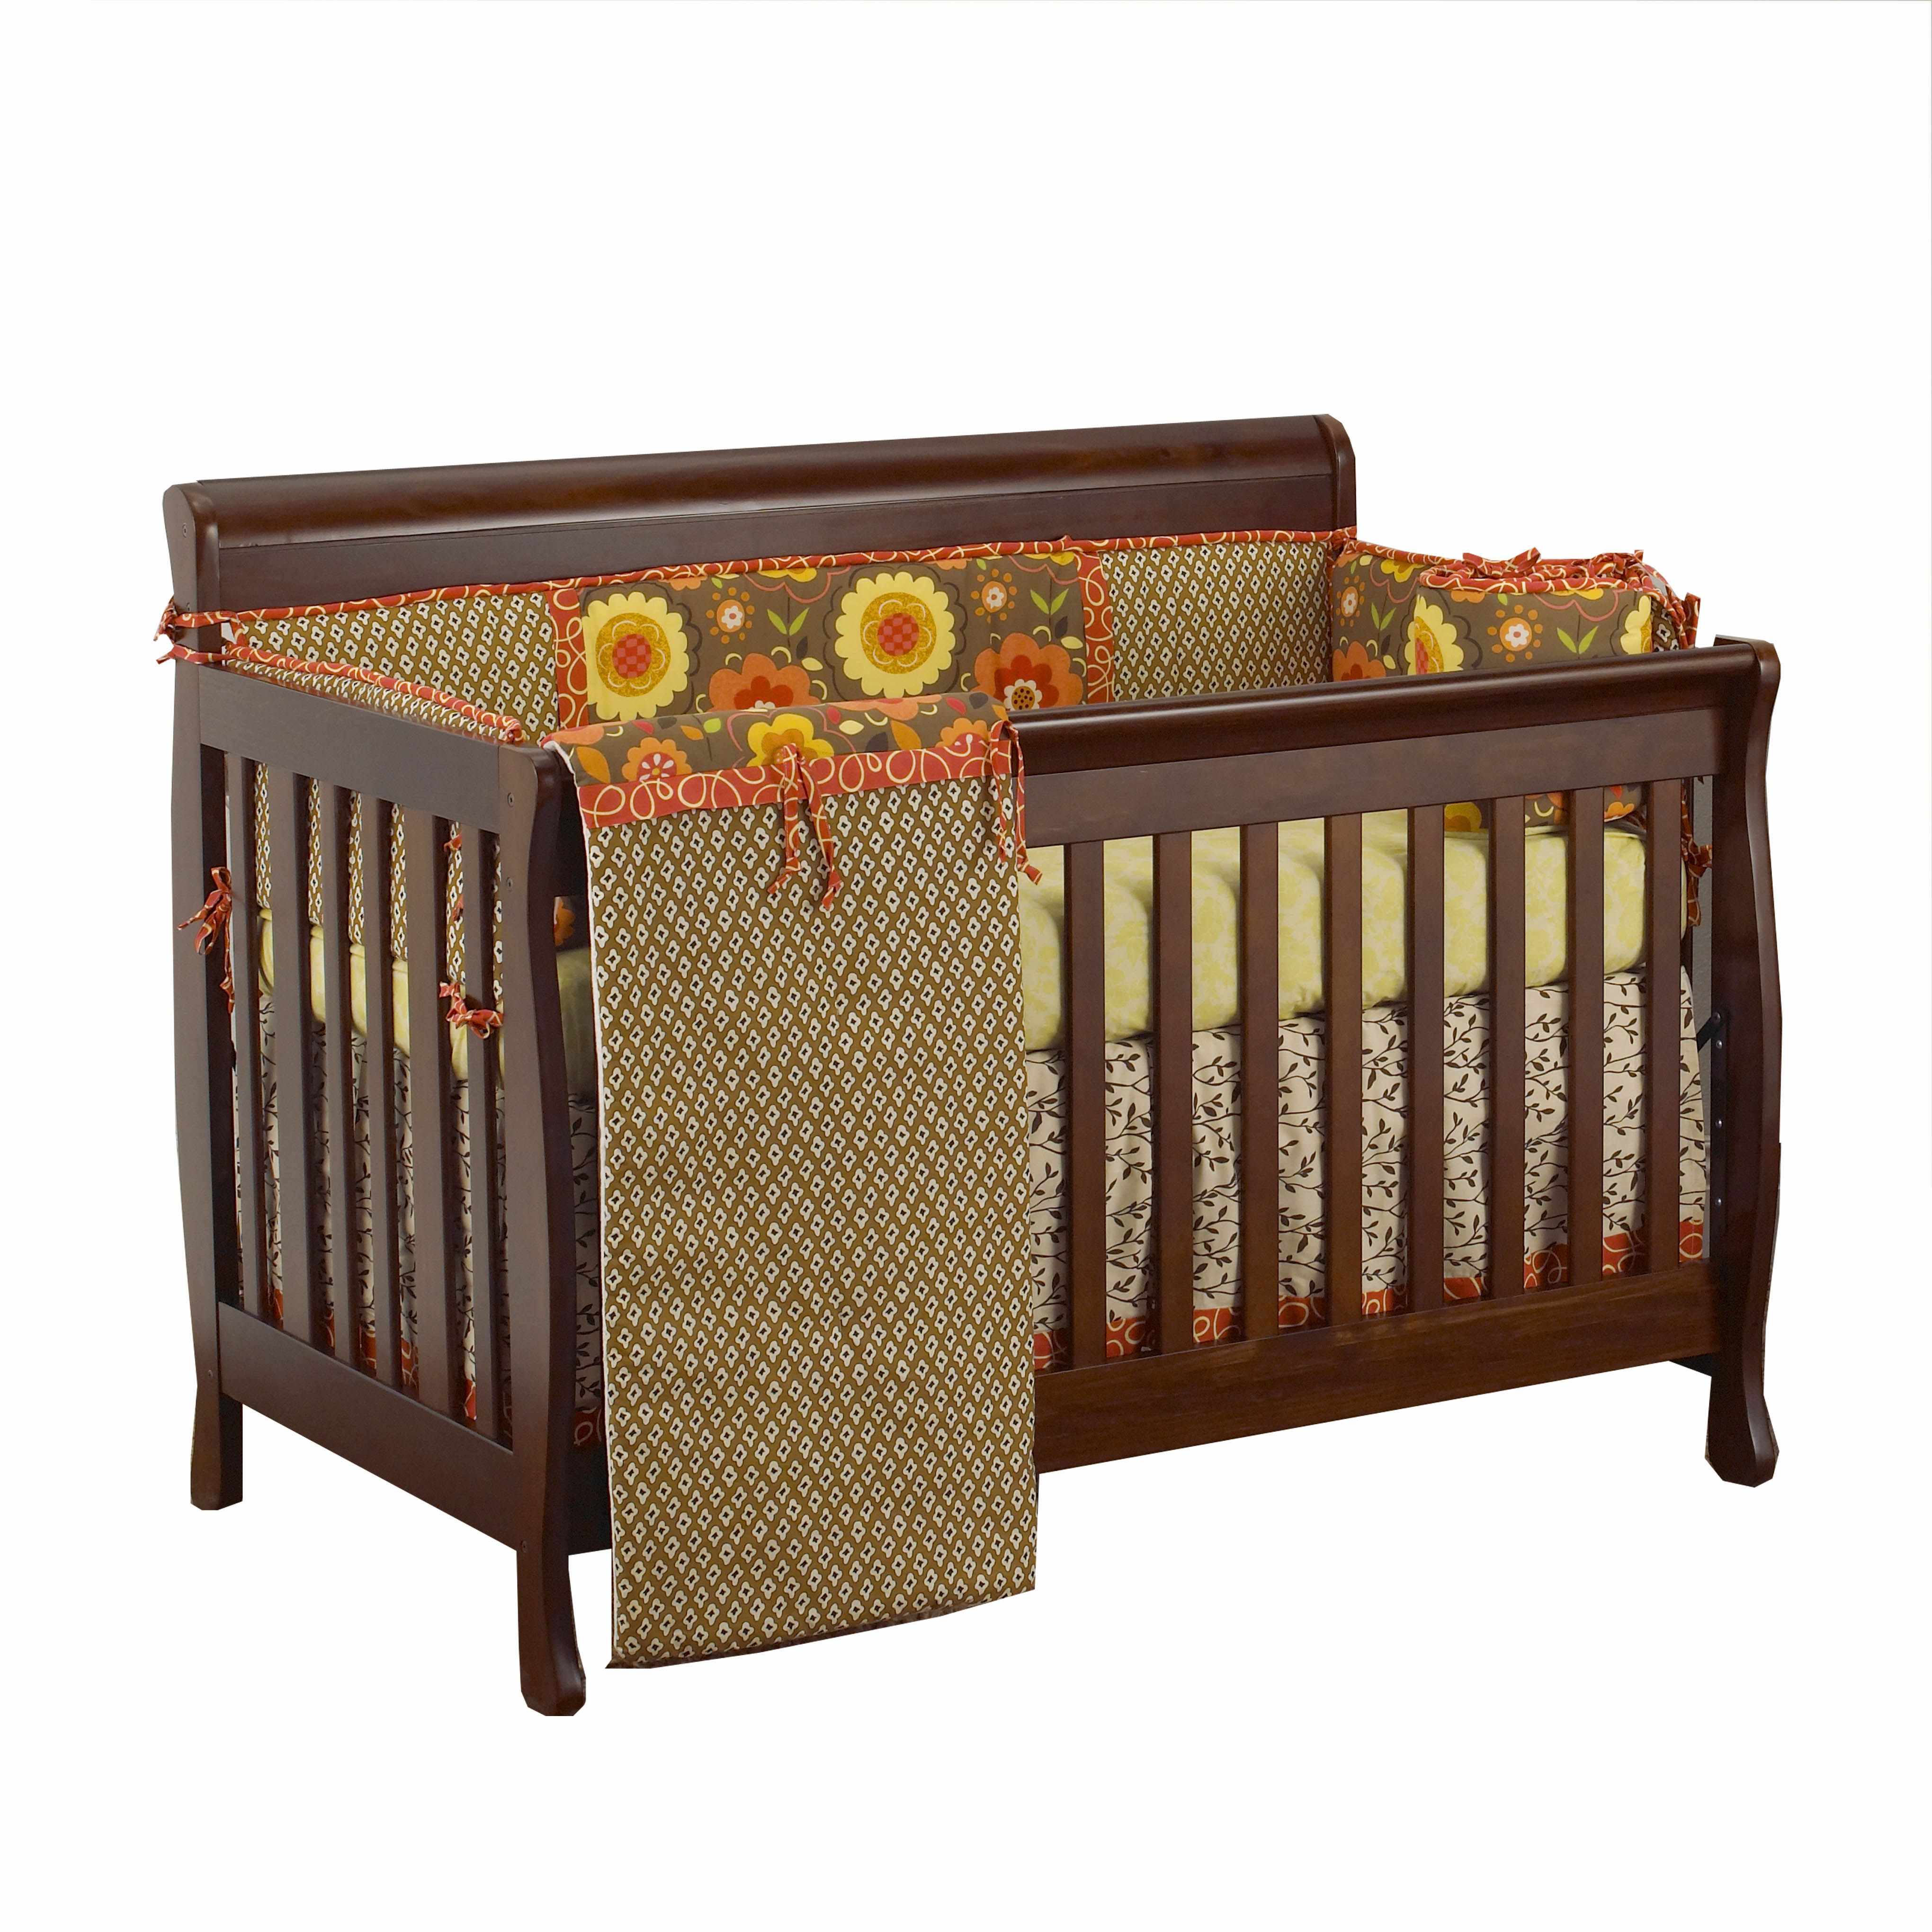 FREE SHIPPING! Convertible Crib and Baby Bedding together